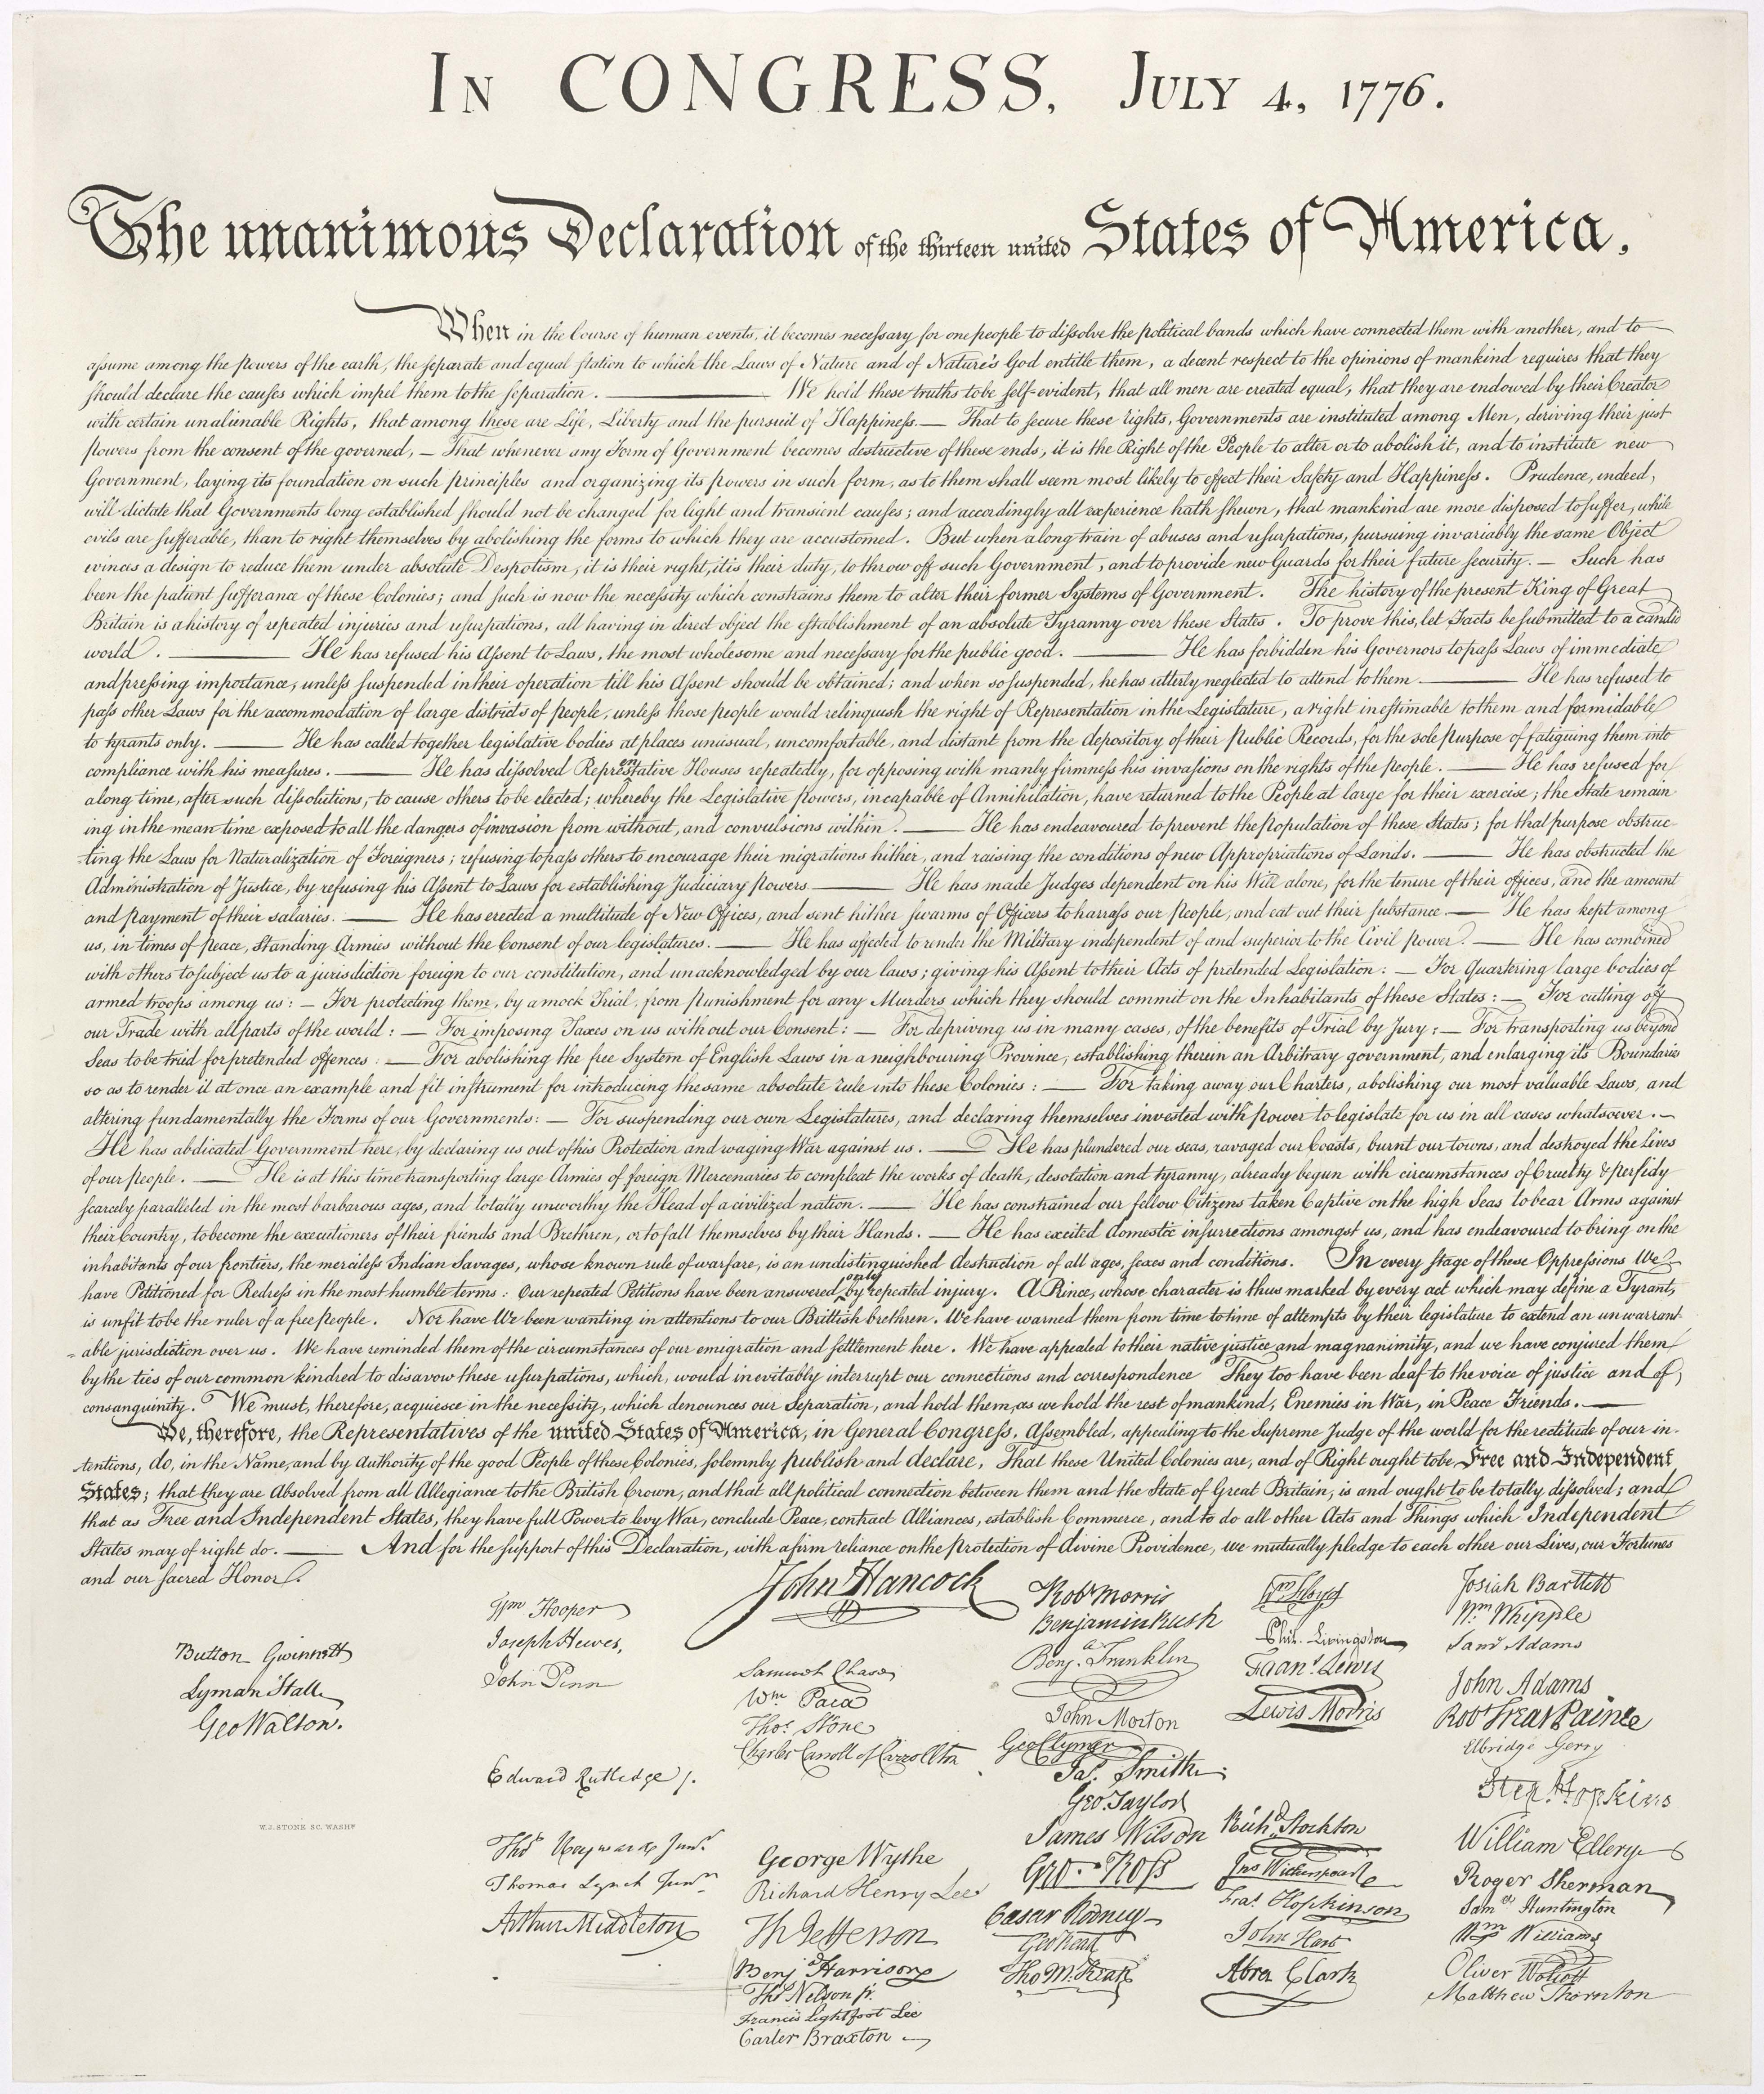 United States Declaration of Independence. Photo by: Wikimedia Commons